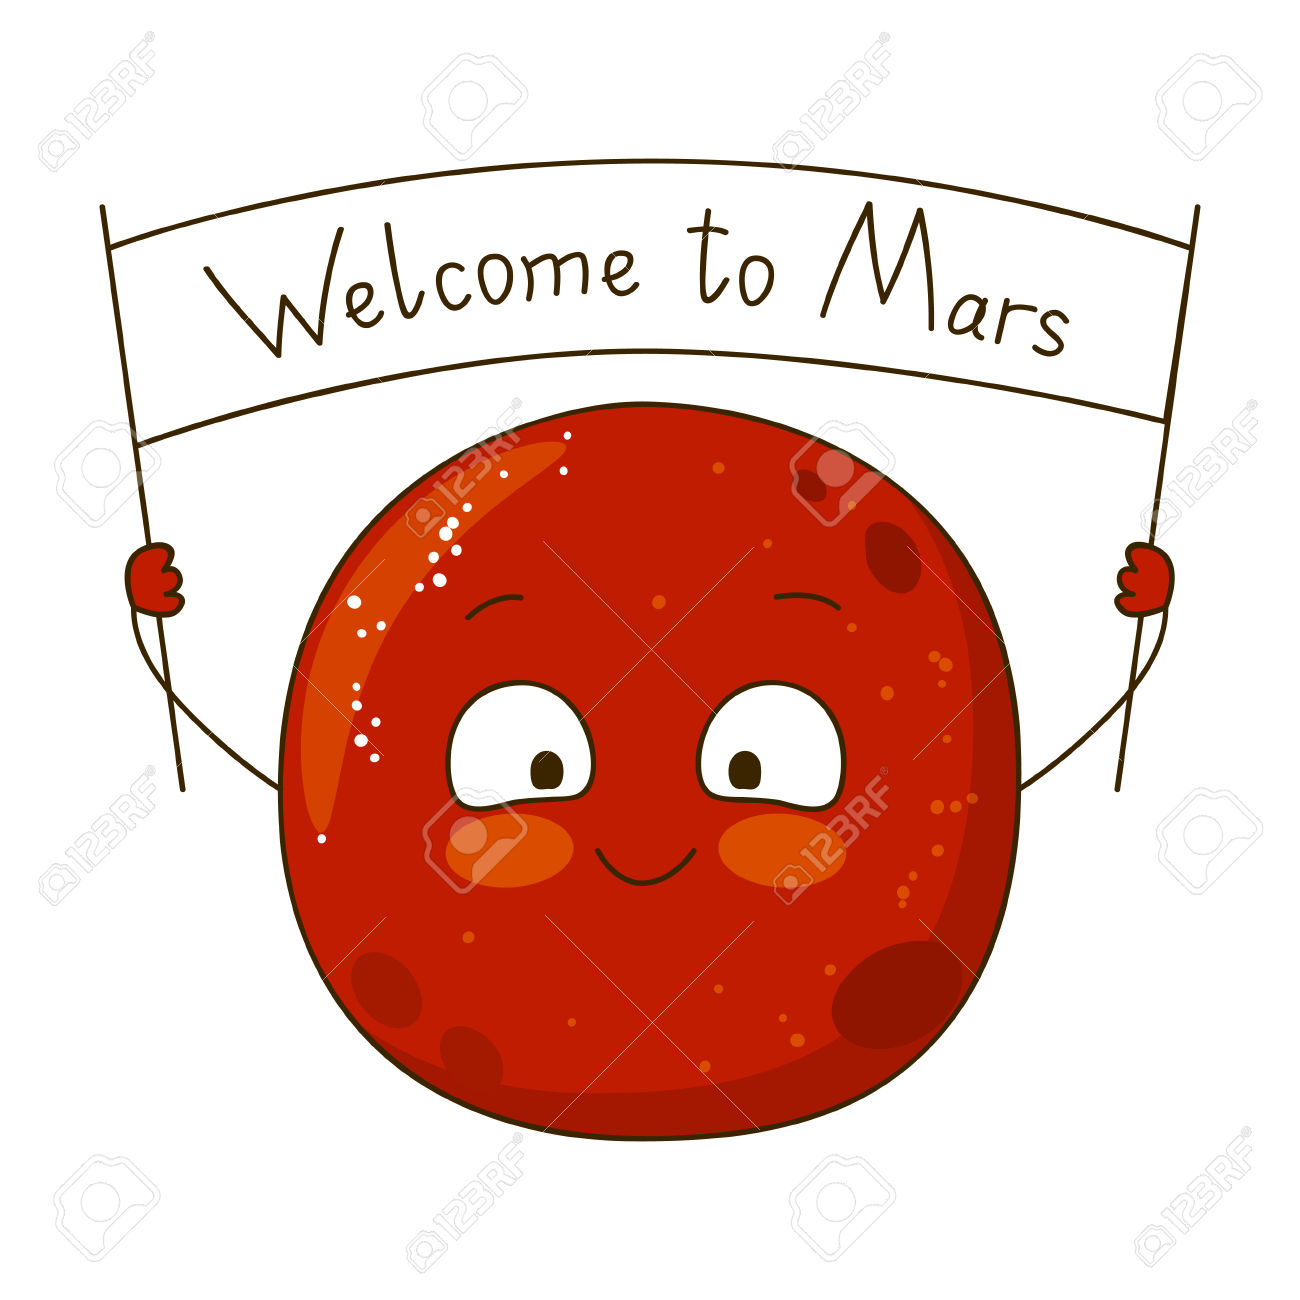 face on mars clipart clipground viking clip art for free viking clip art images